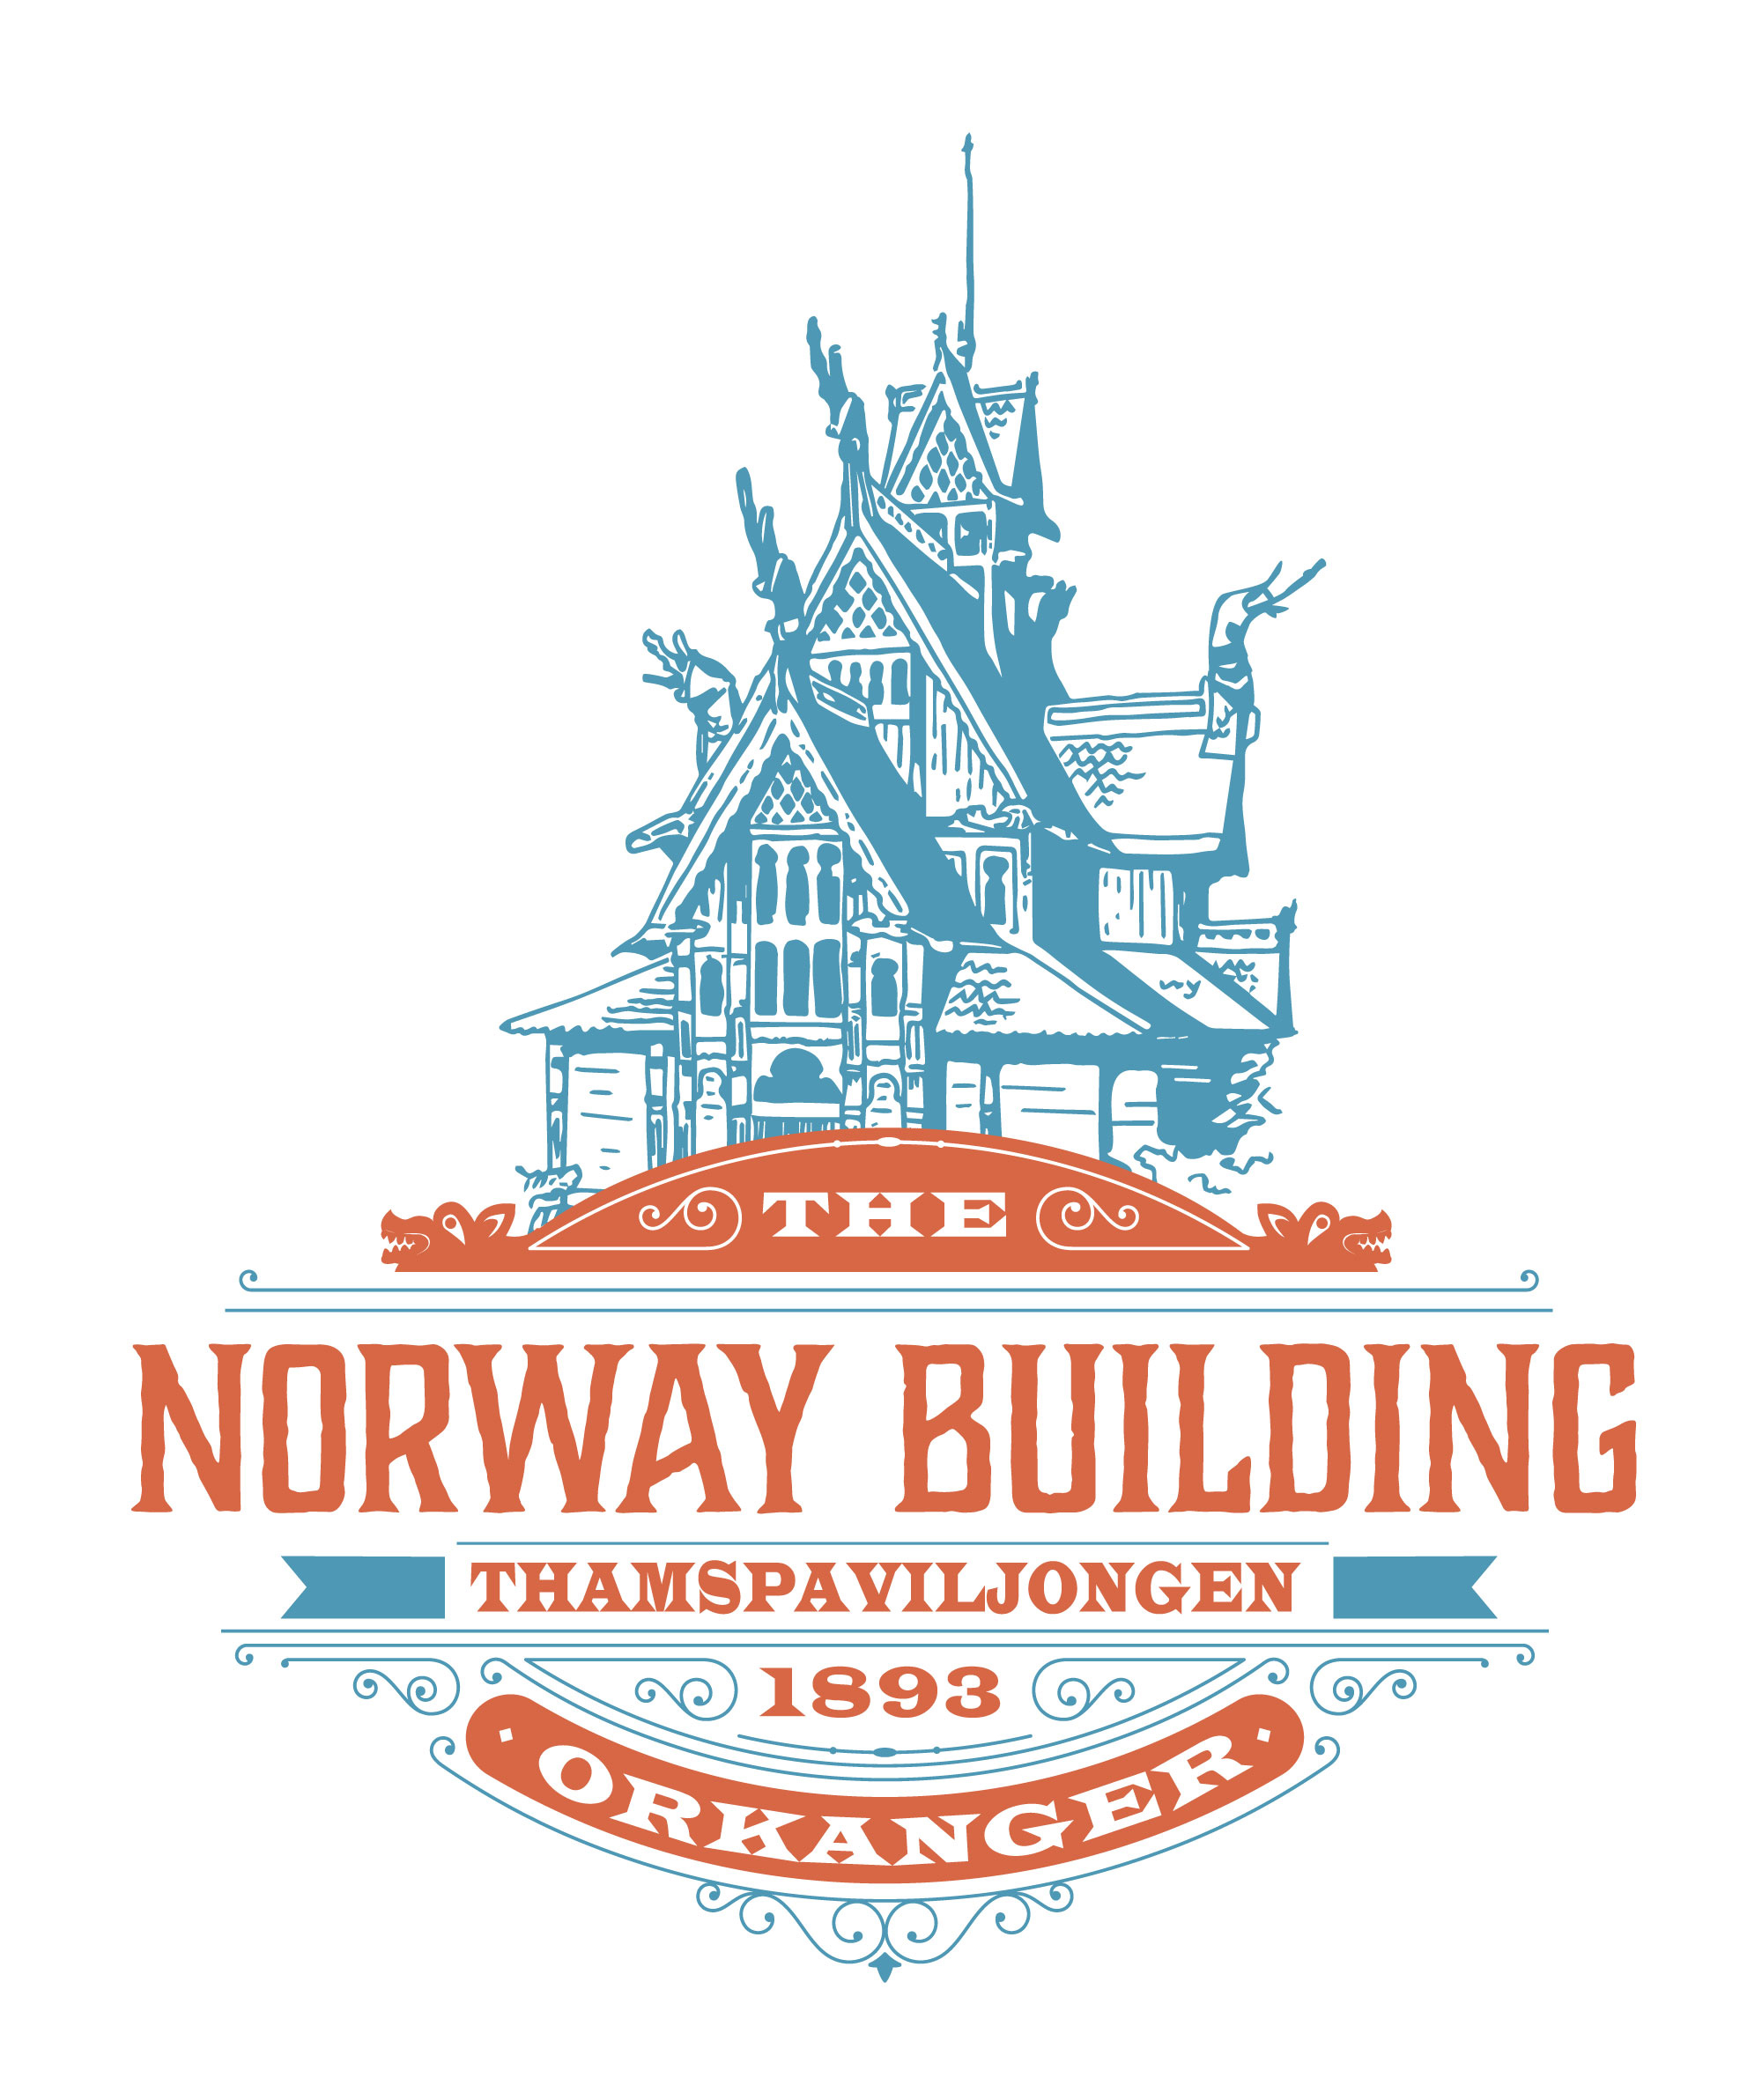 The Norway Building